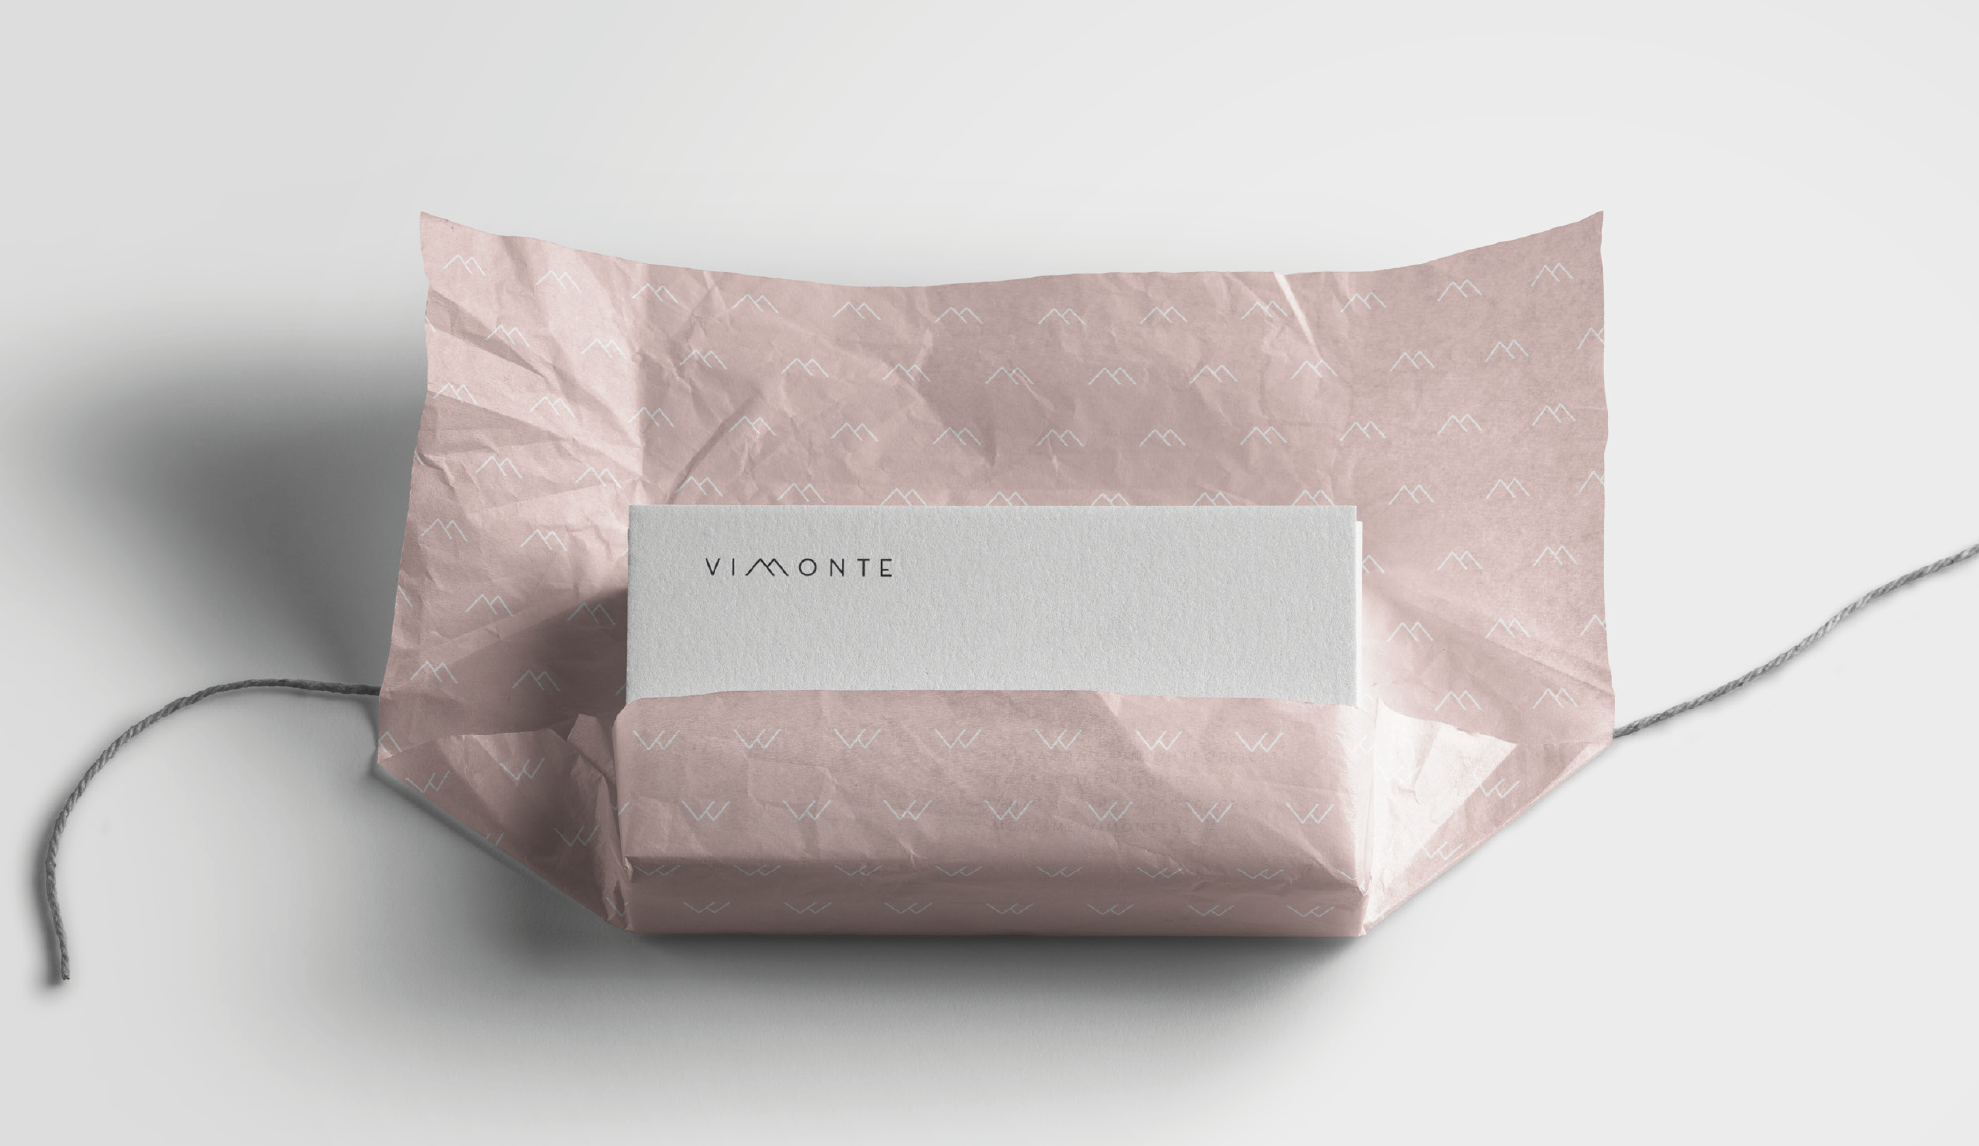 Branding for VIMONTE-image-left-upper